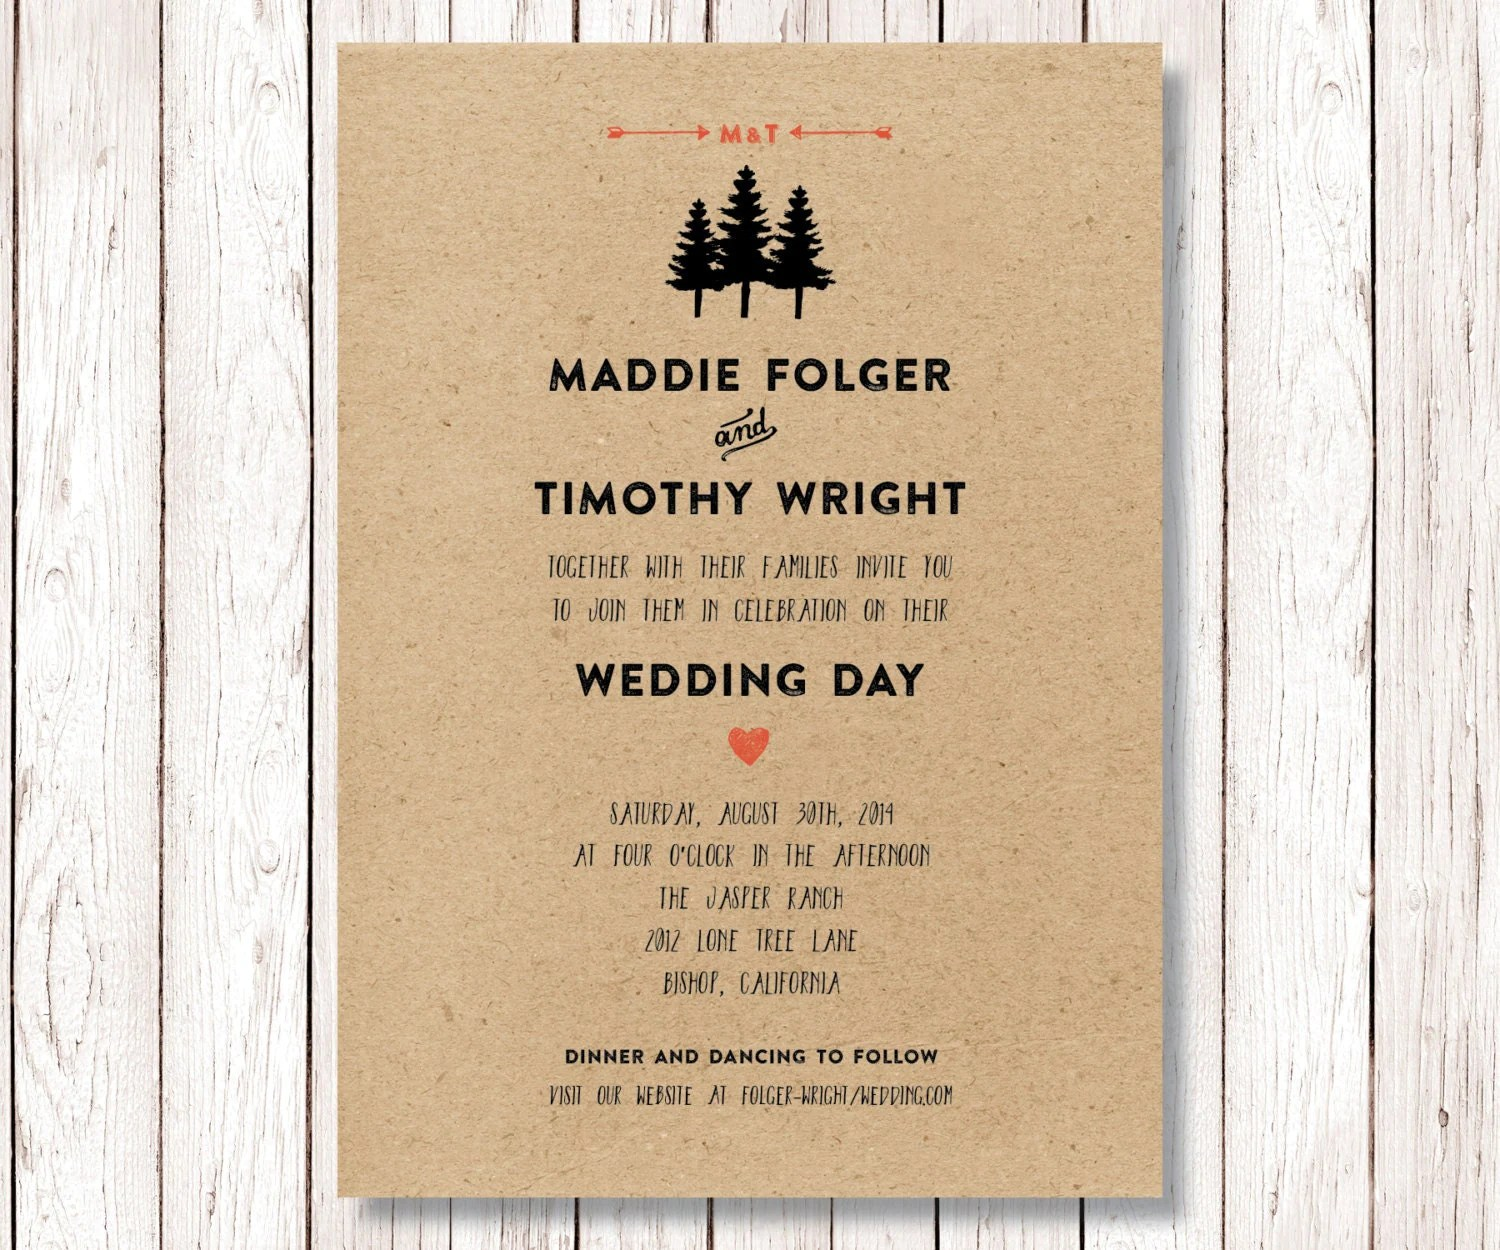 Yosemite Wedding Invitations: Rustic Wedding Invitation, Pine Tree Wedding, Hand Drawn